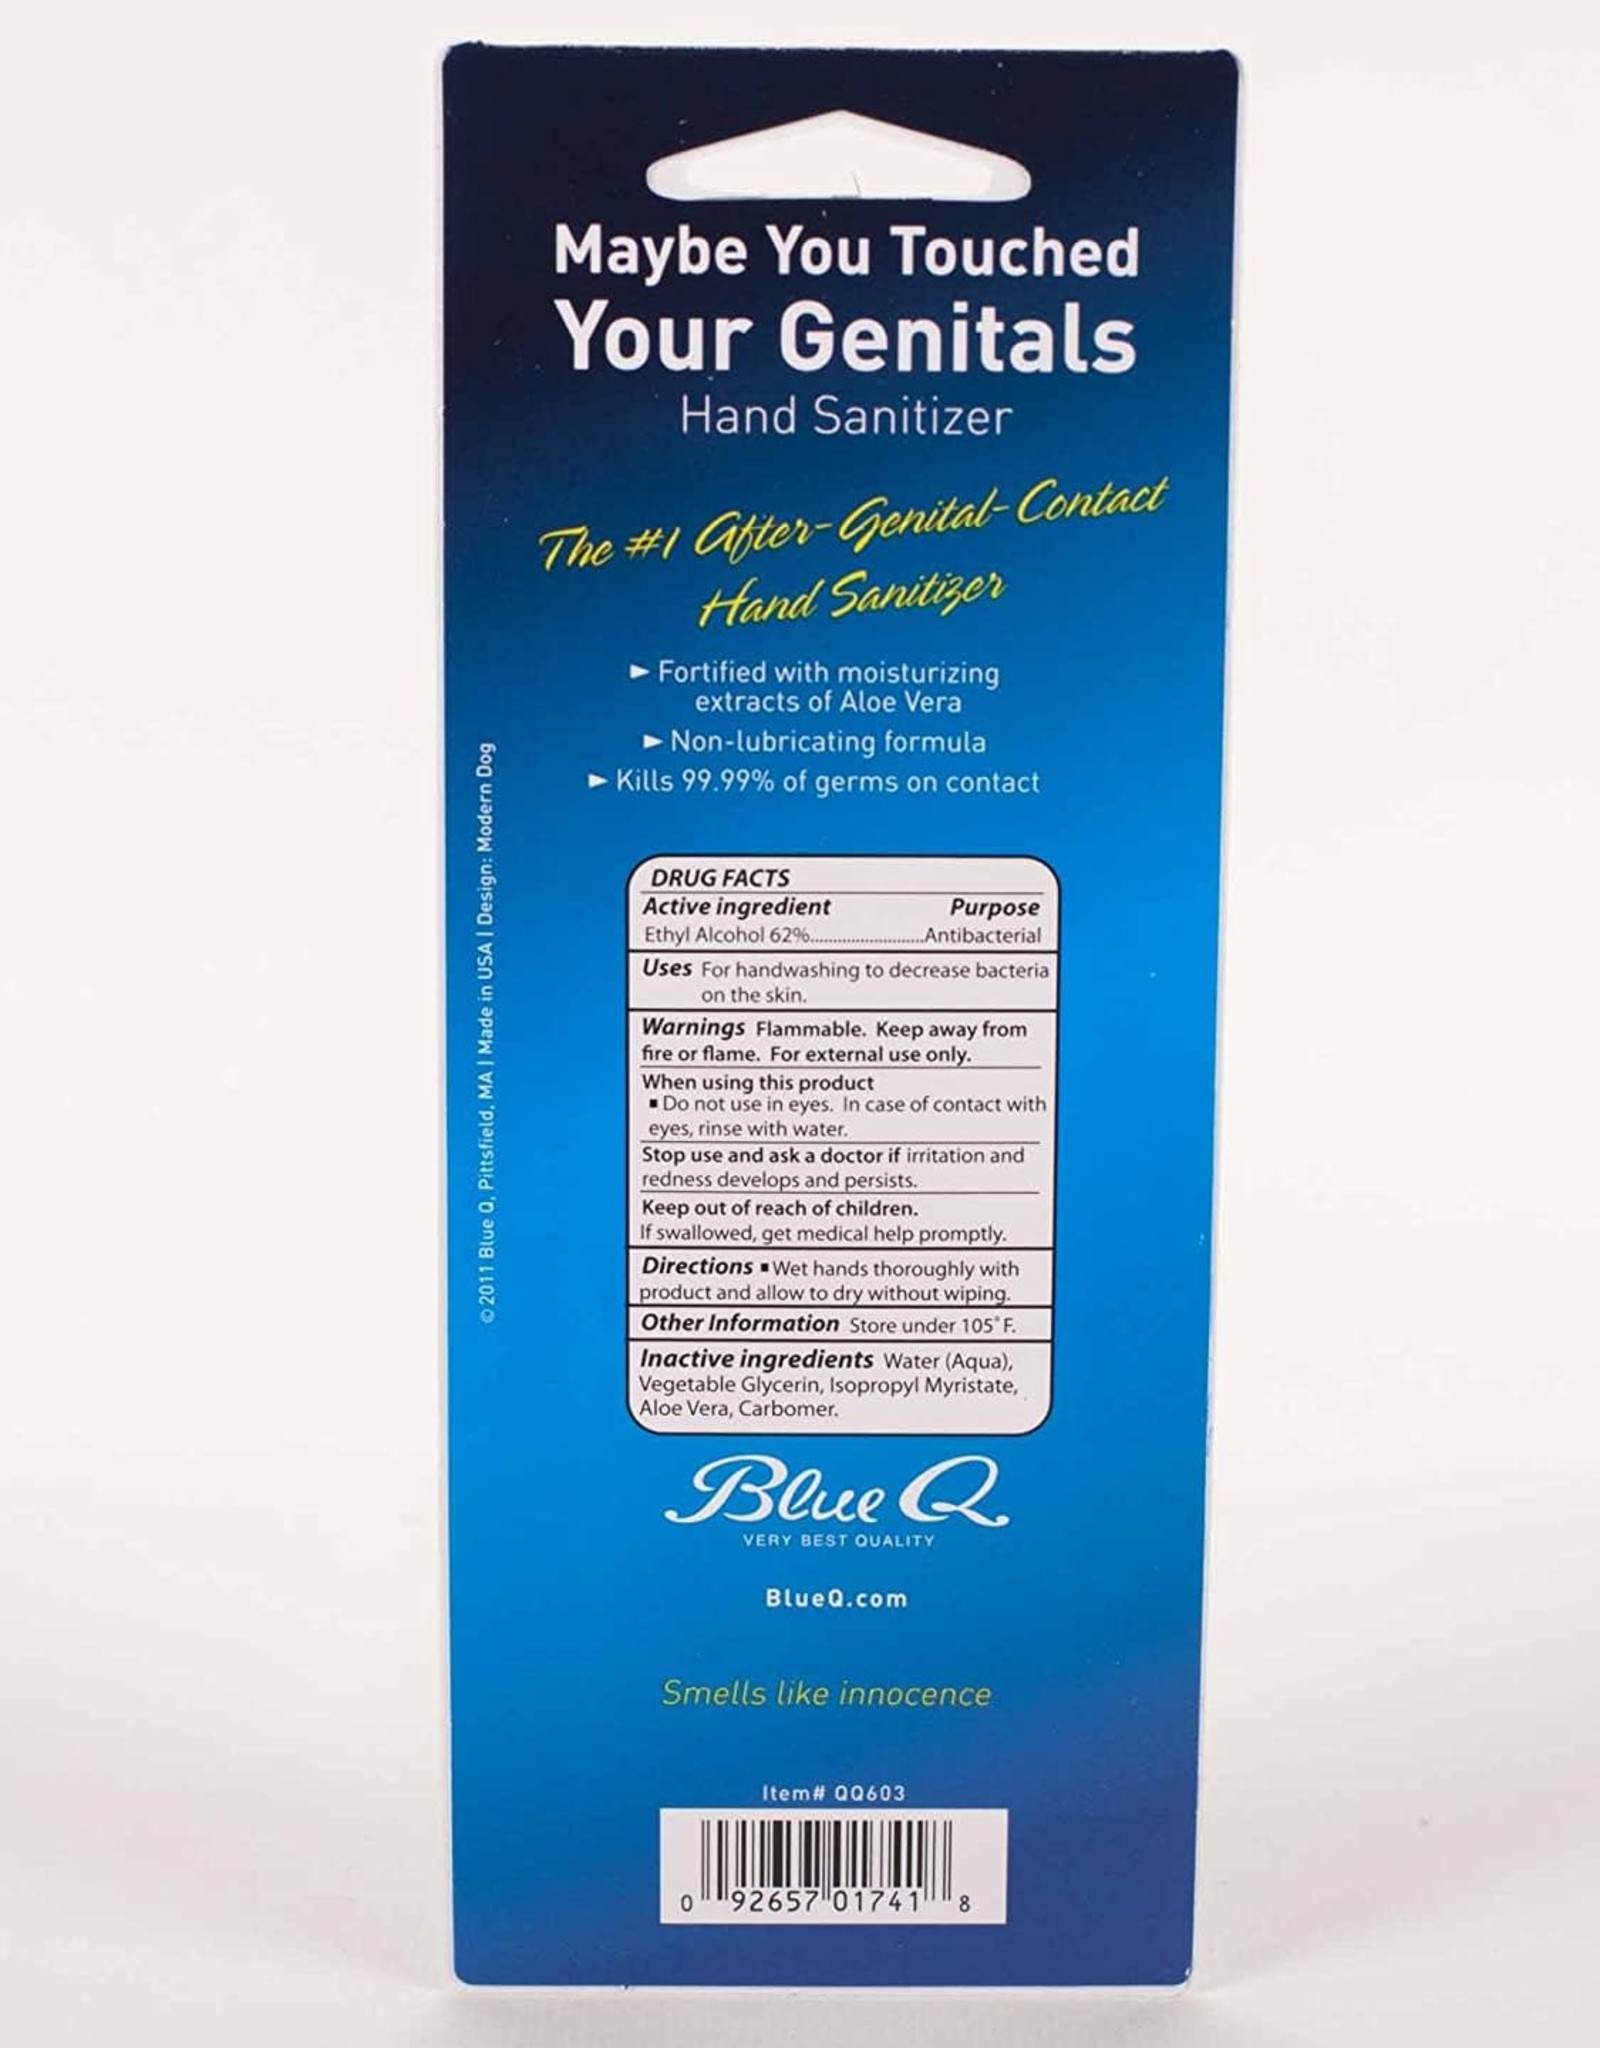 Blue Q ''Maybe You Touched Your Genitals'' - hand sanitizer